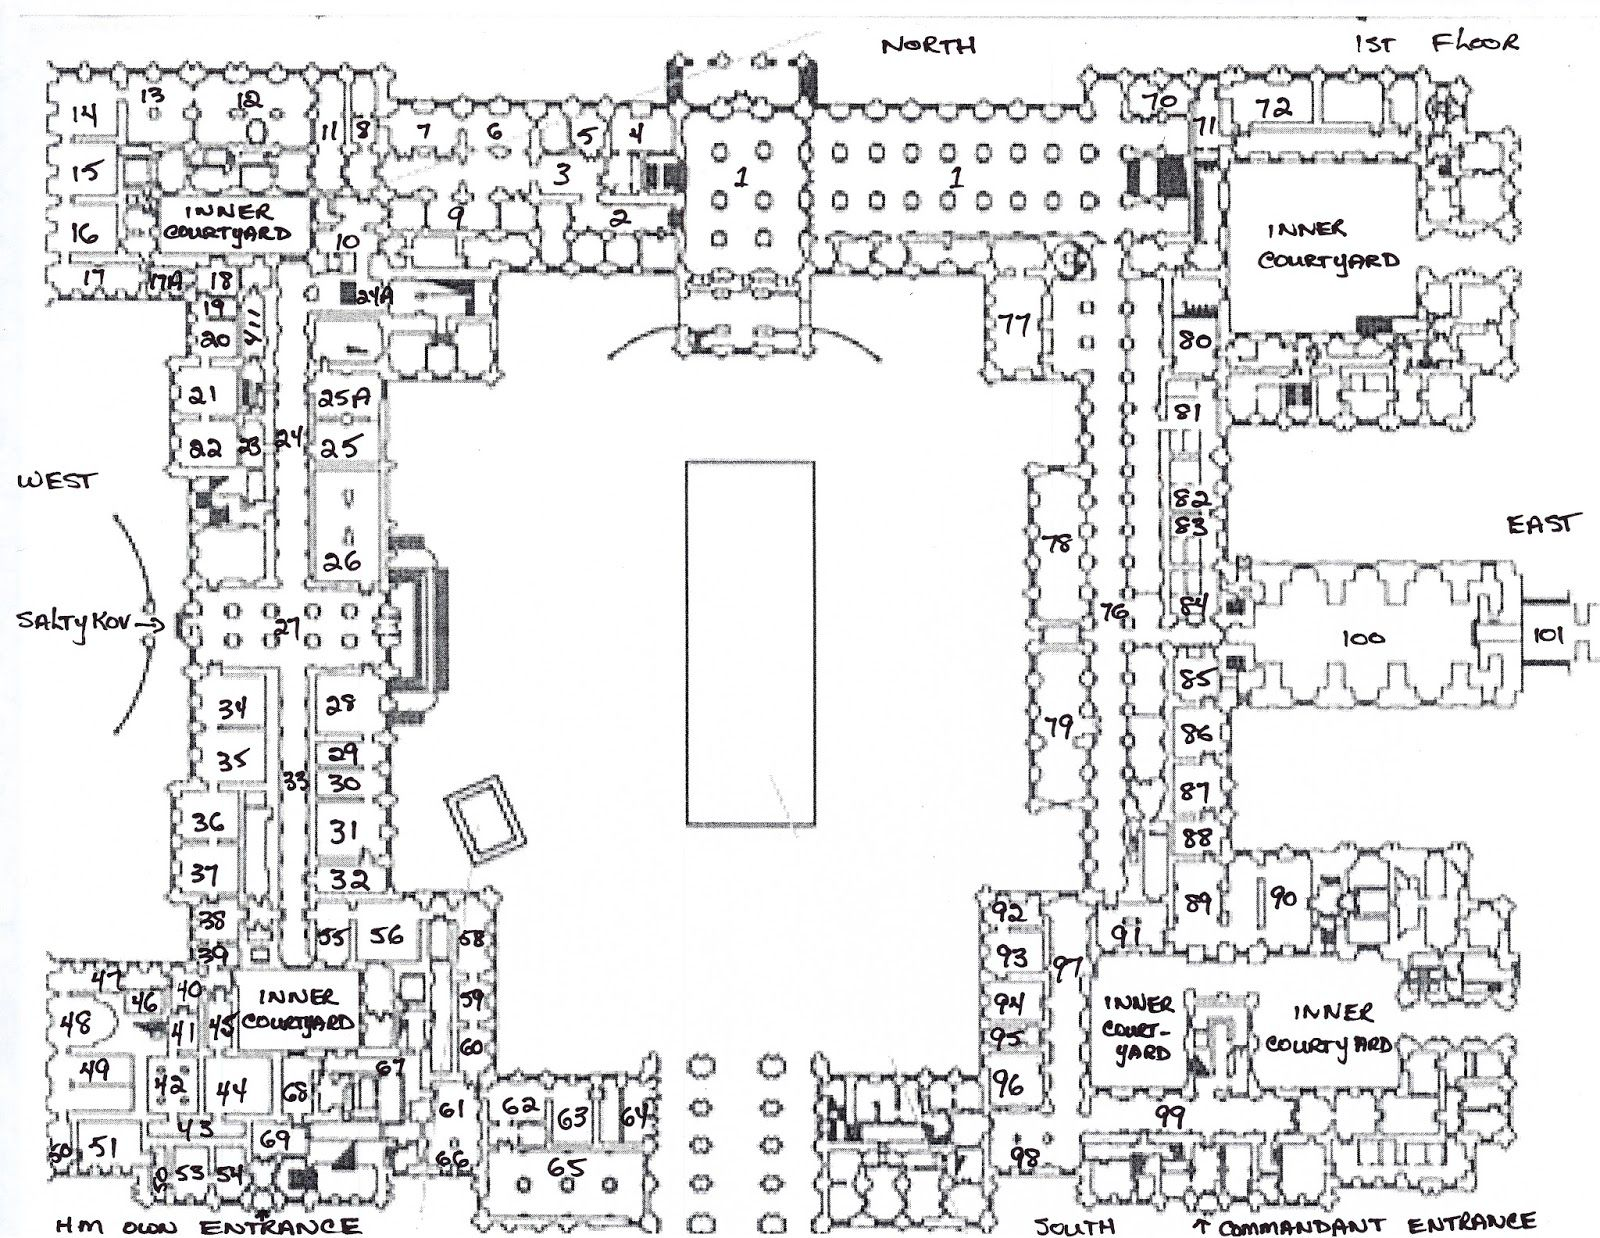 Plan List Of The 1st Floor Of The Winter Palace Winter Palace Castle Floor Plan Winter Palace St Petersburg